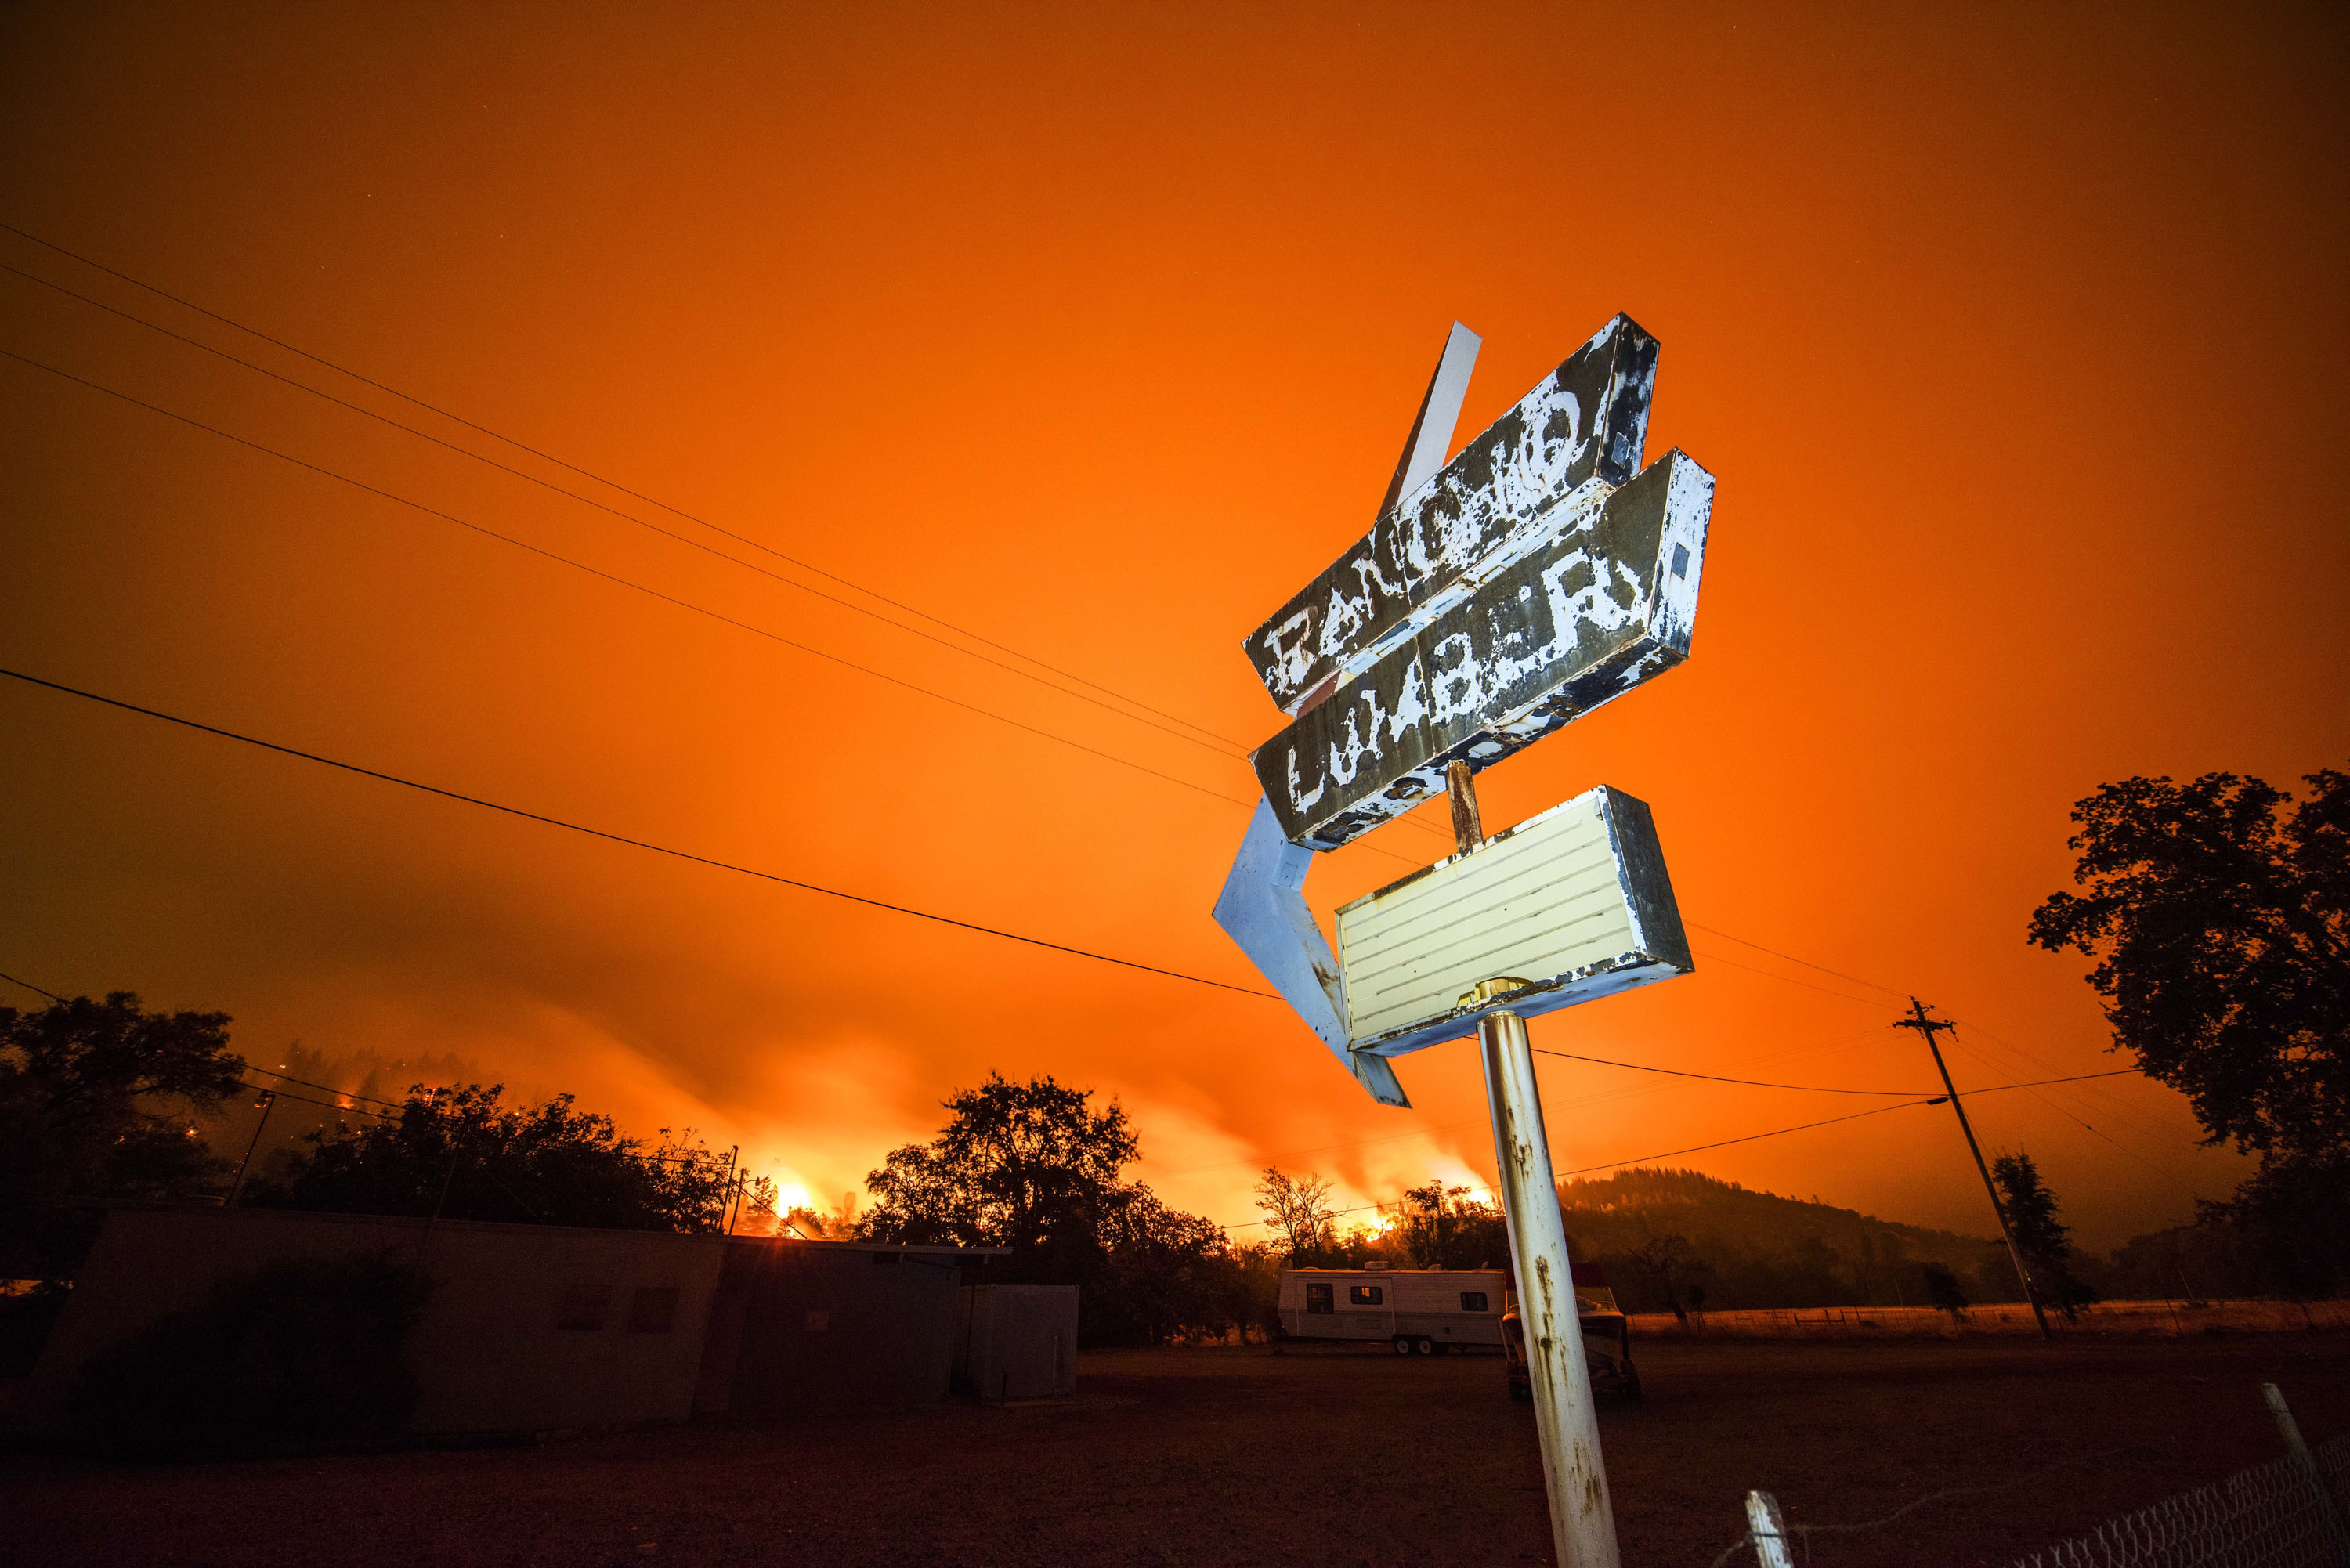 The Valley Fire in Northern California is one of many devastating wildfires to hit the U.S. this year.